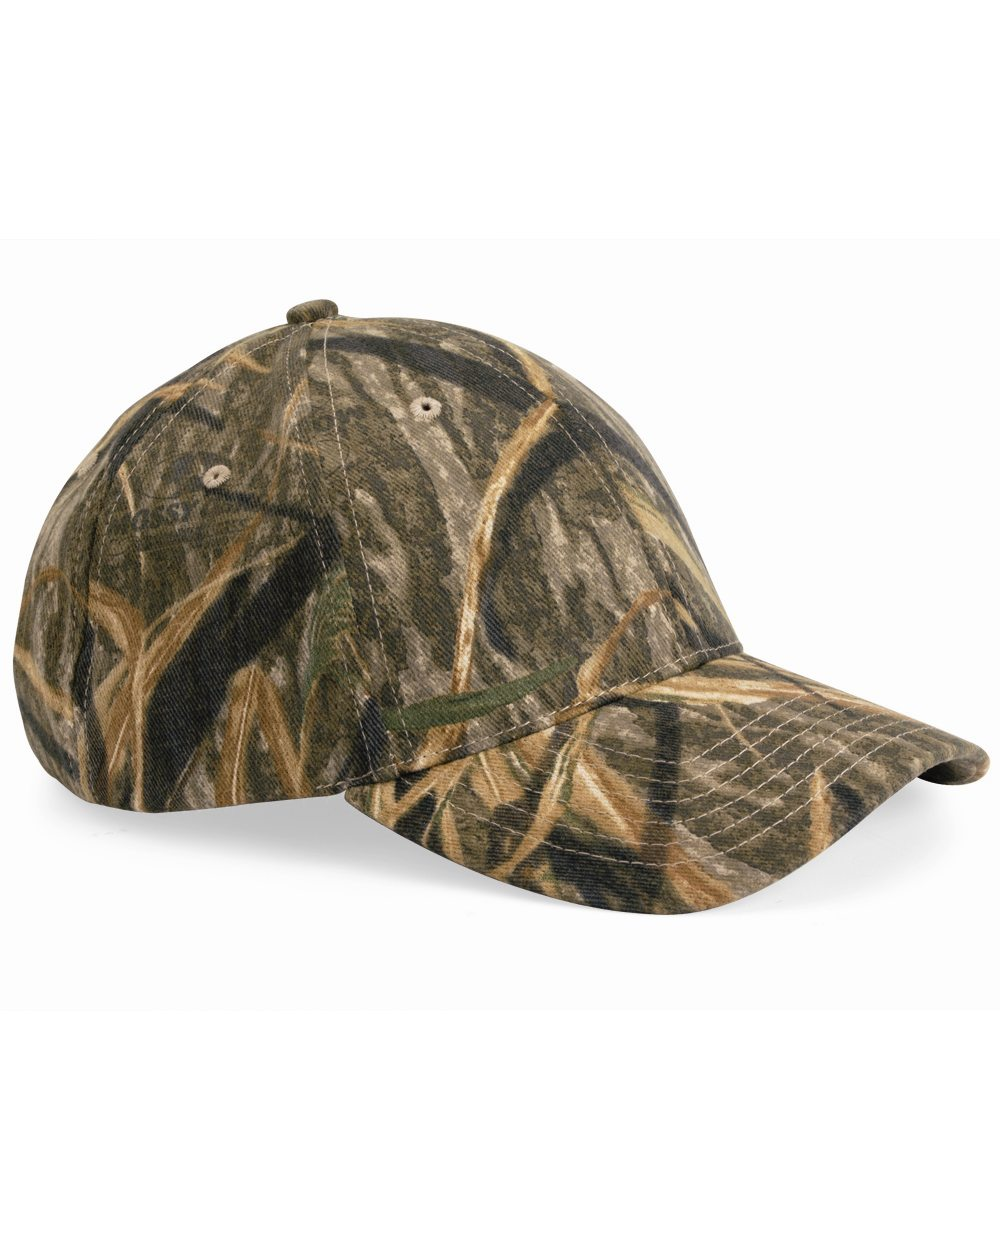 Kati LC10 - Structured Mid Profile Camouflage Cap